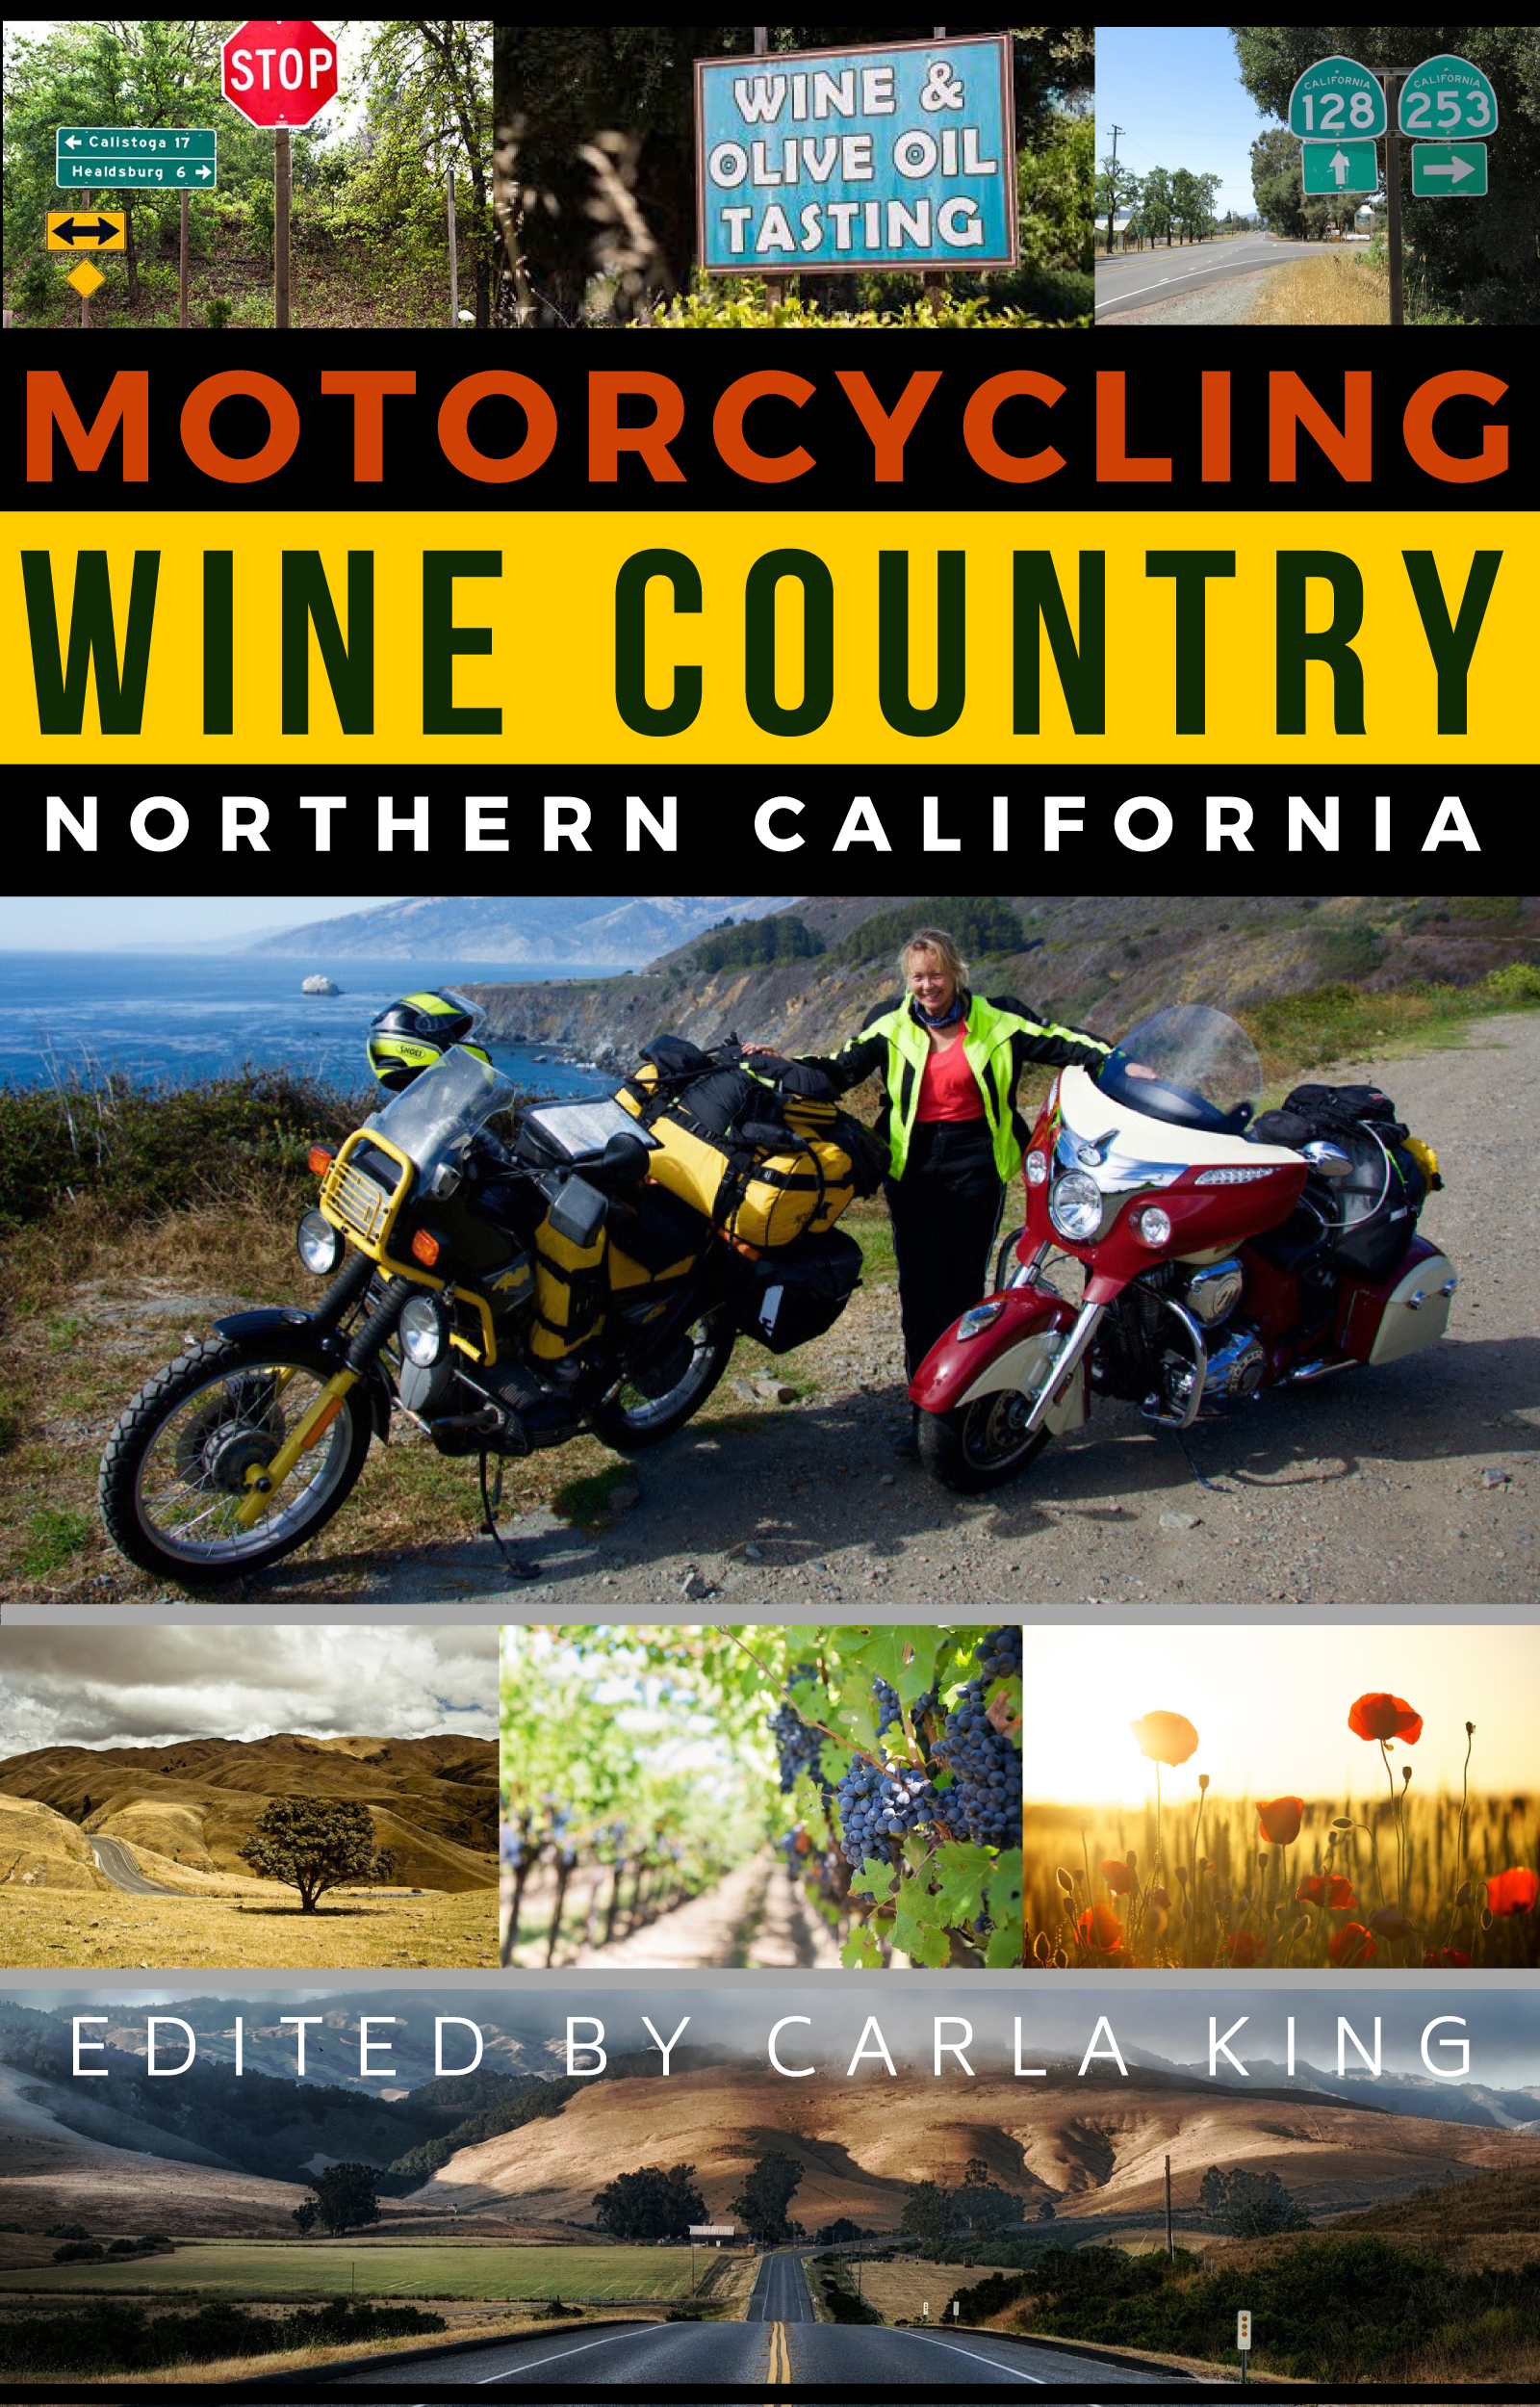 Cover image for Motorcycling Northern California Wine Country